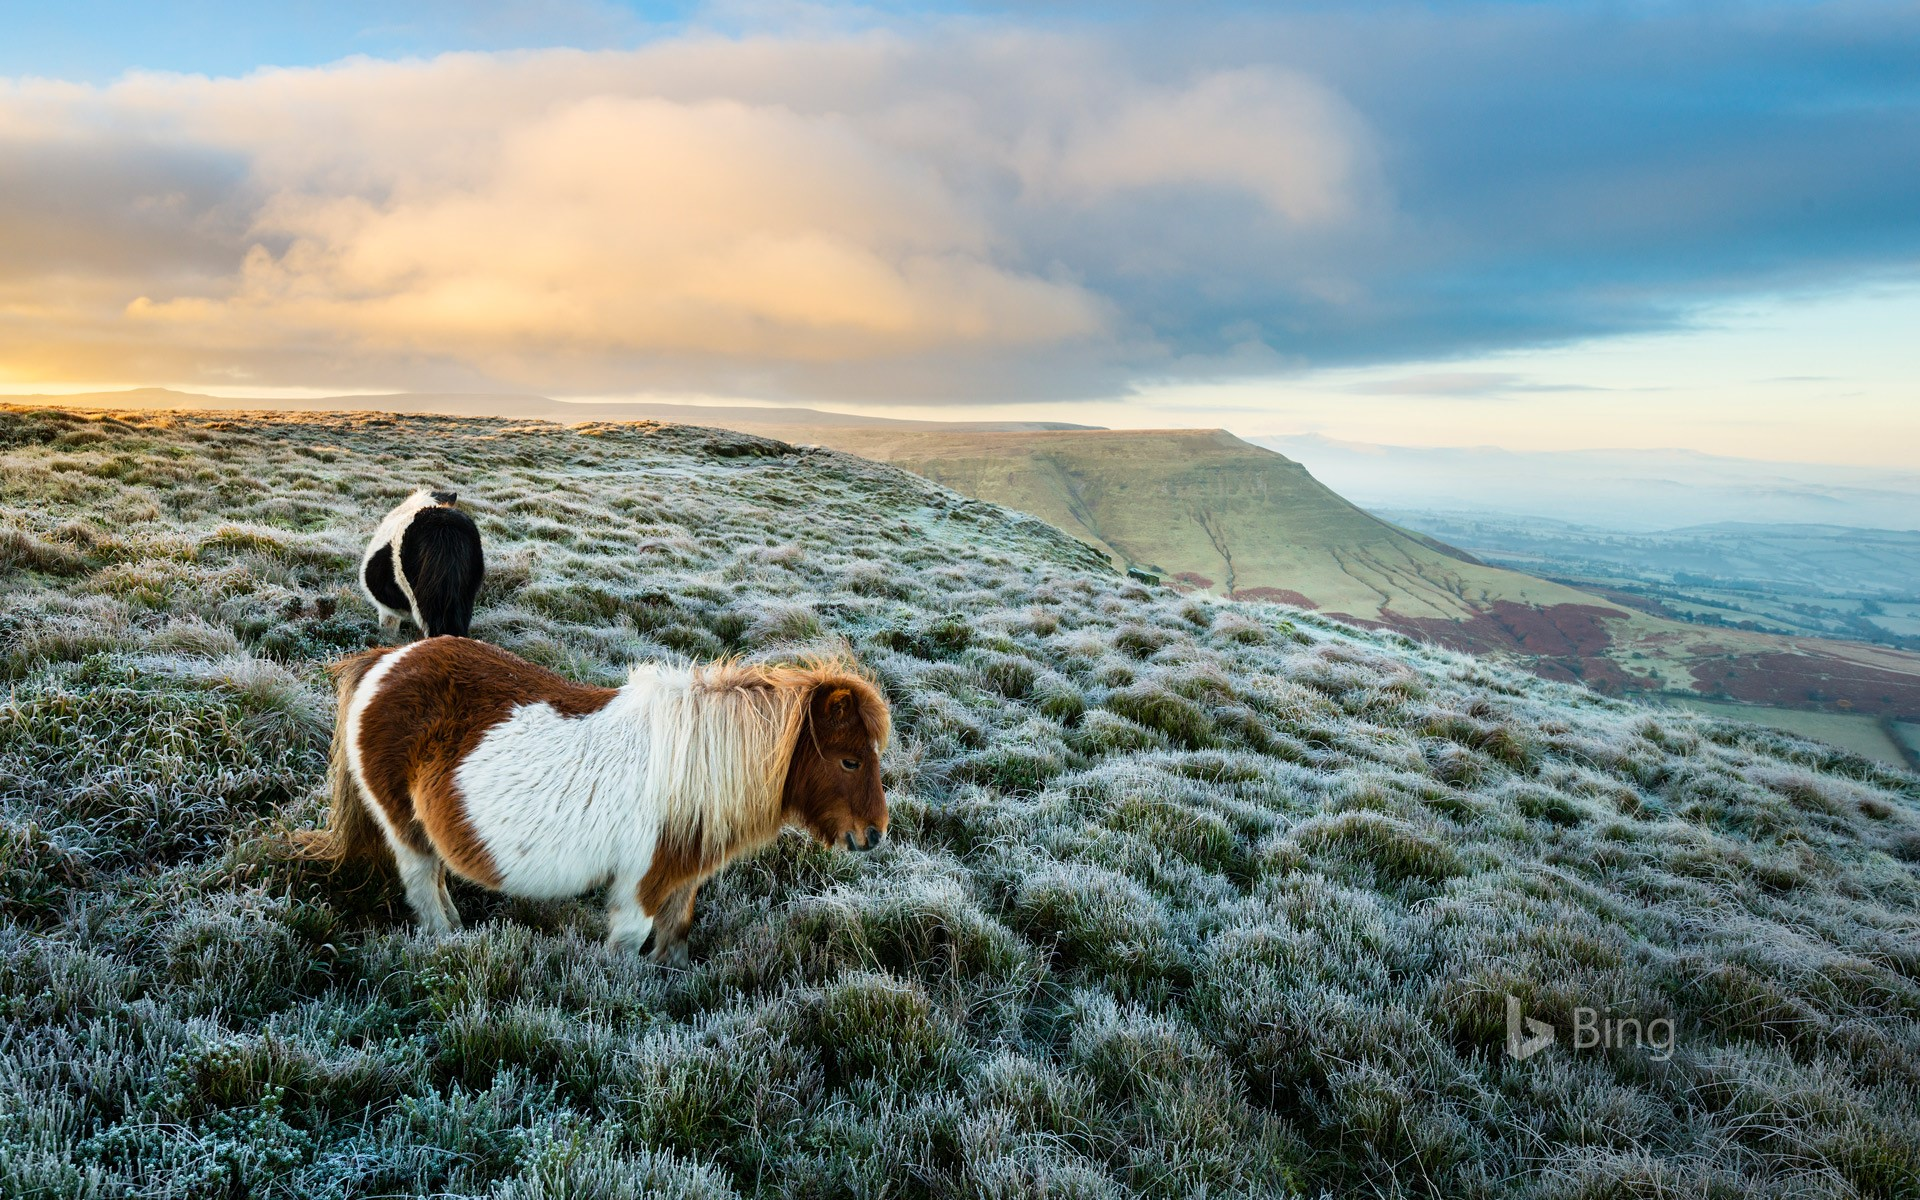 Wild ponies at Hay Bluff, Black Mountains, Brecon Beacons National Park, Wales